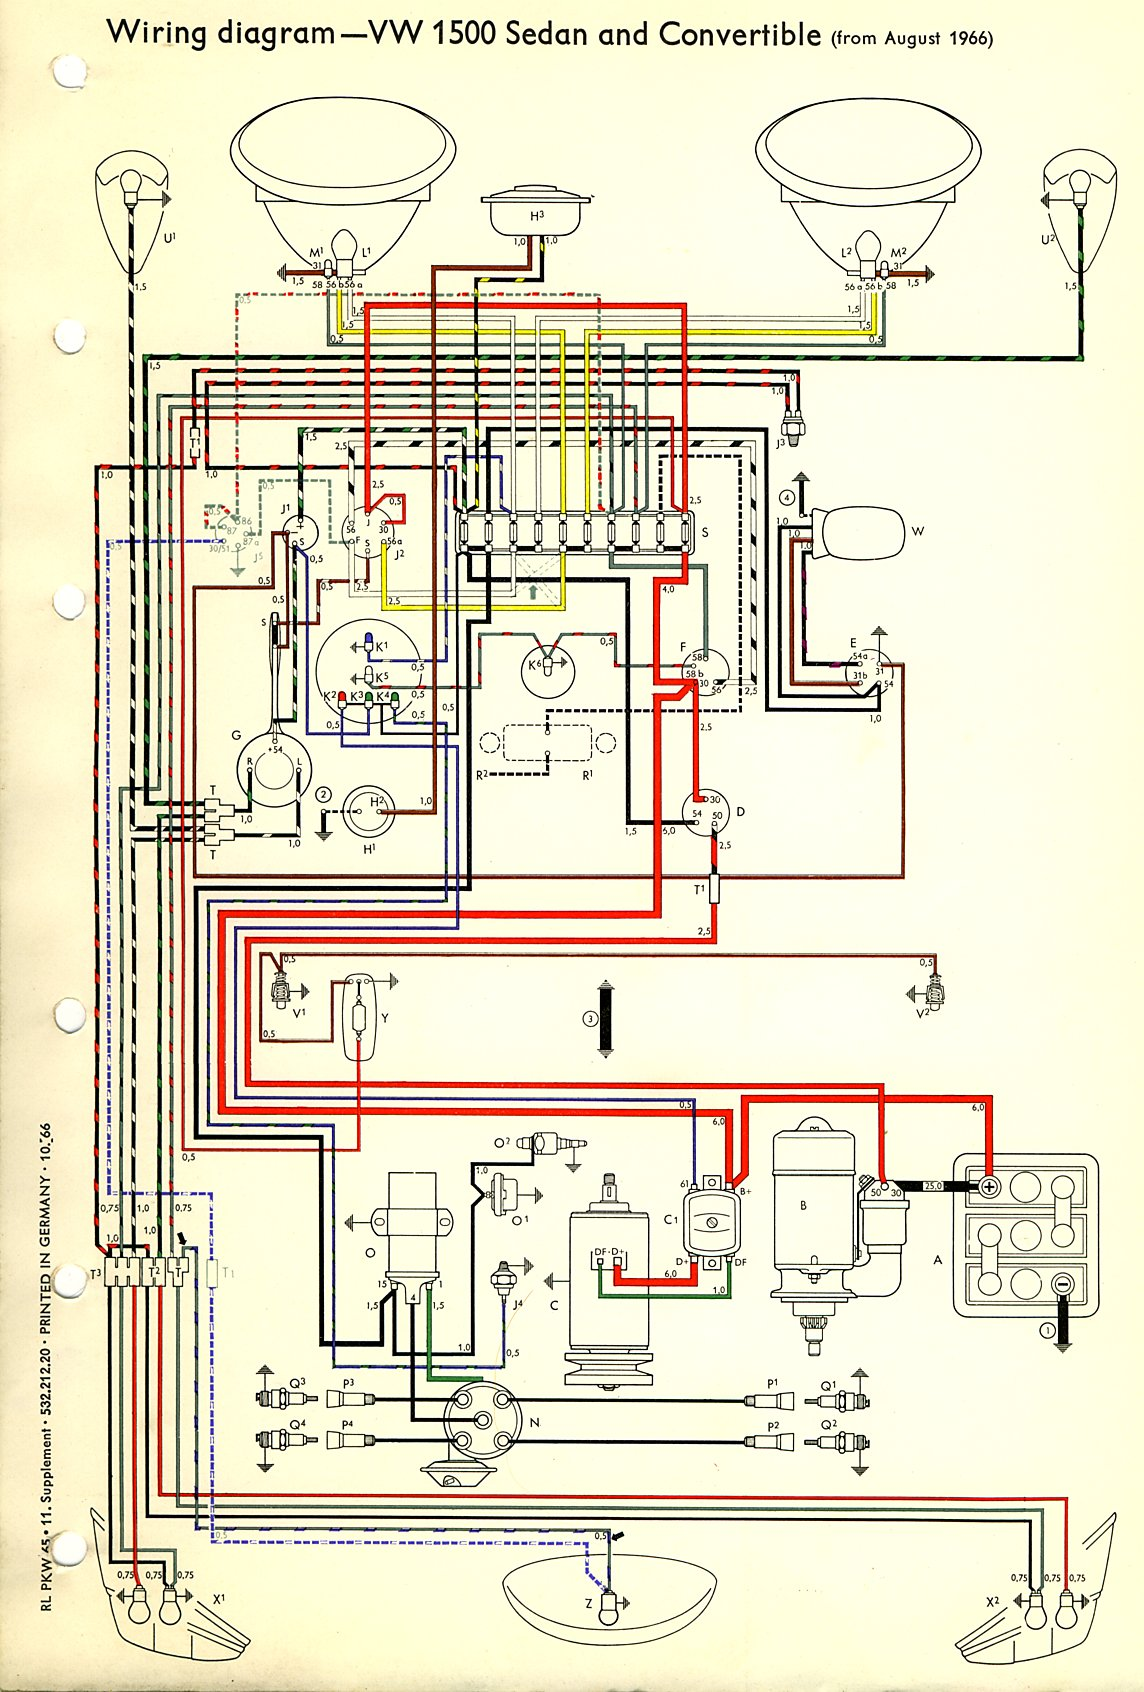 bug_67 1967 beetle wiring diagram thegoldenbug com volkswagen 2002 beetle wiring diagram at edmiracle.co